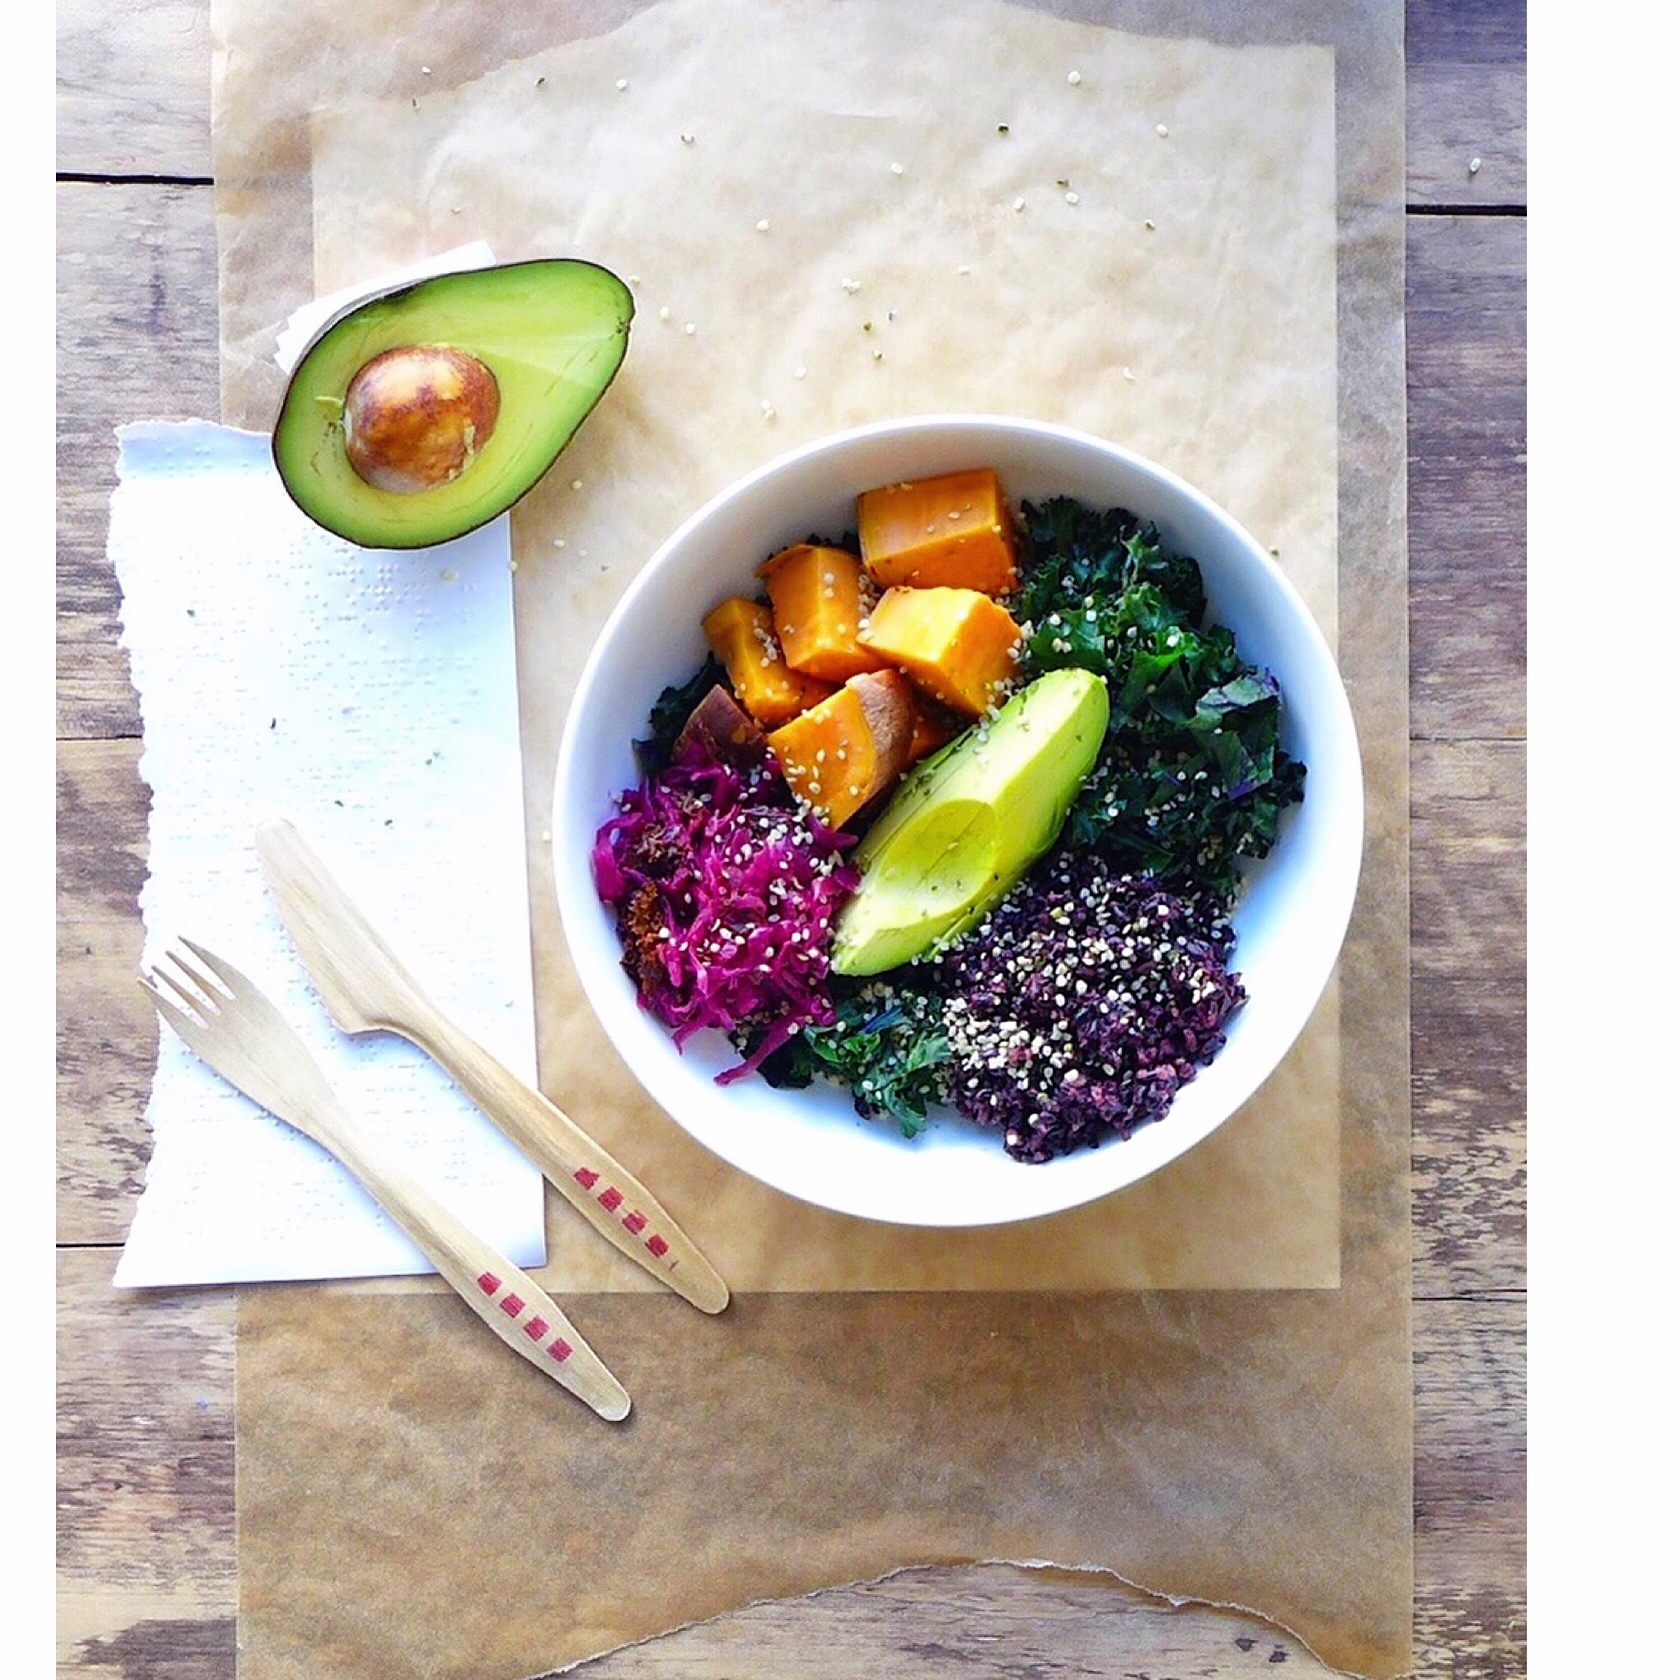 Winter Rainbow Buddha Bowl with black rice, leafy greens, sweet potato, avocado & kraut, #vegan // inmybowl.com